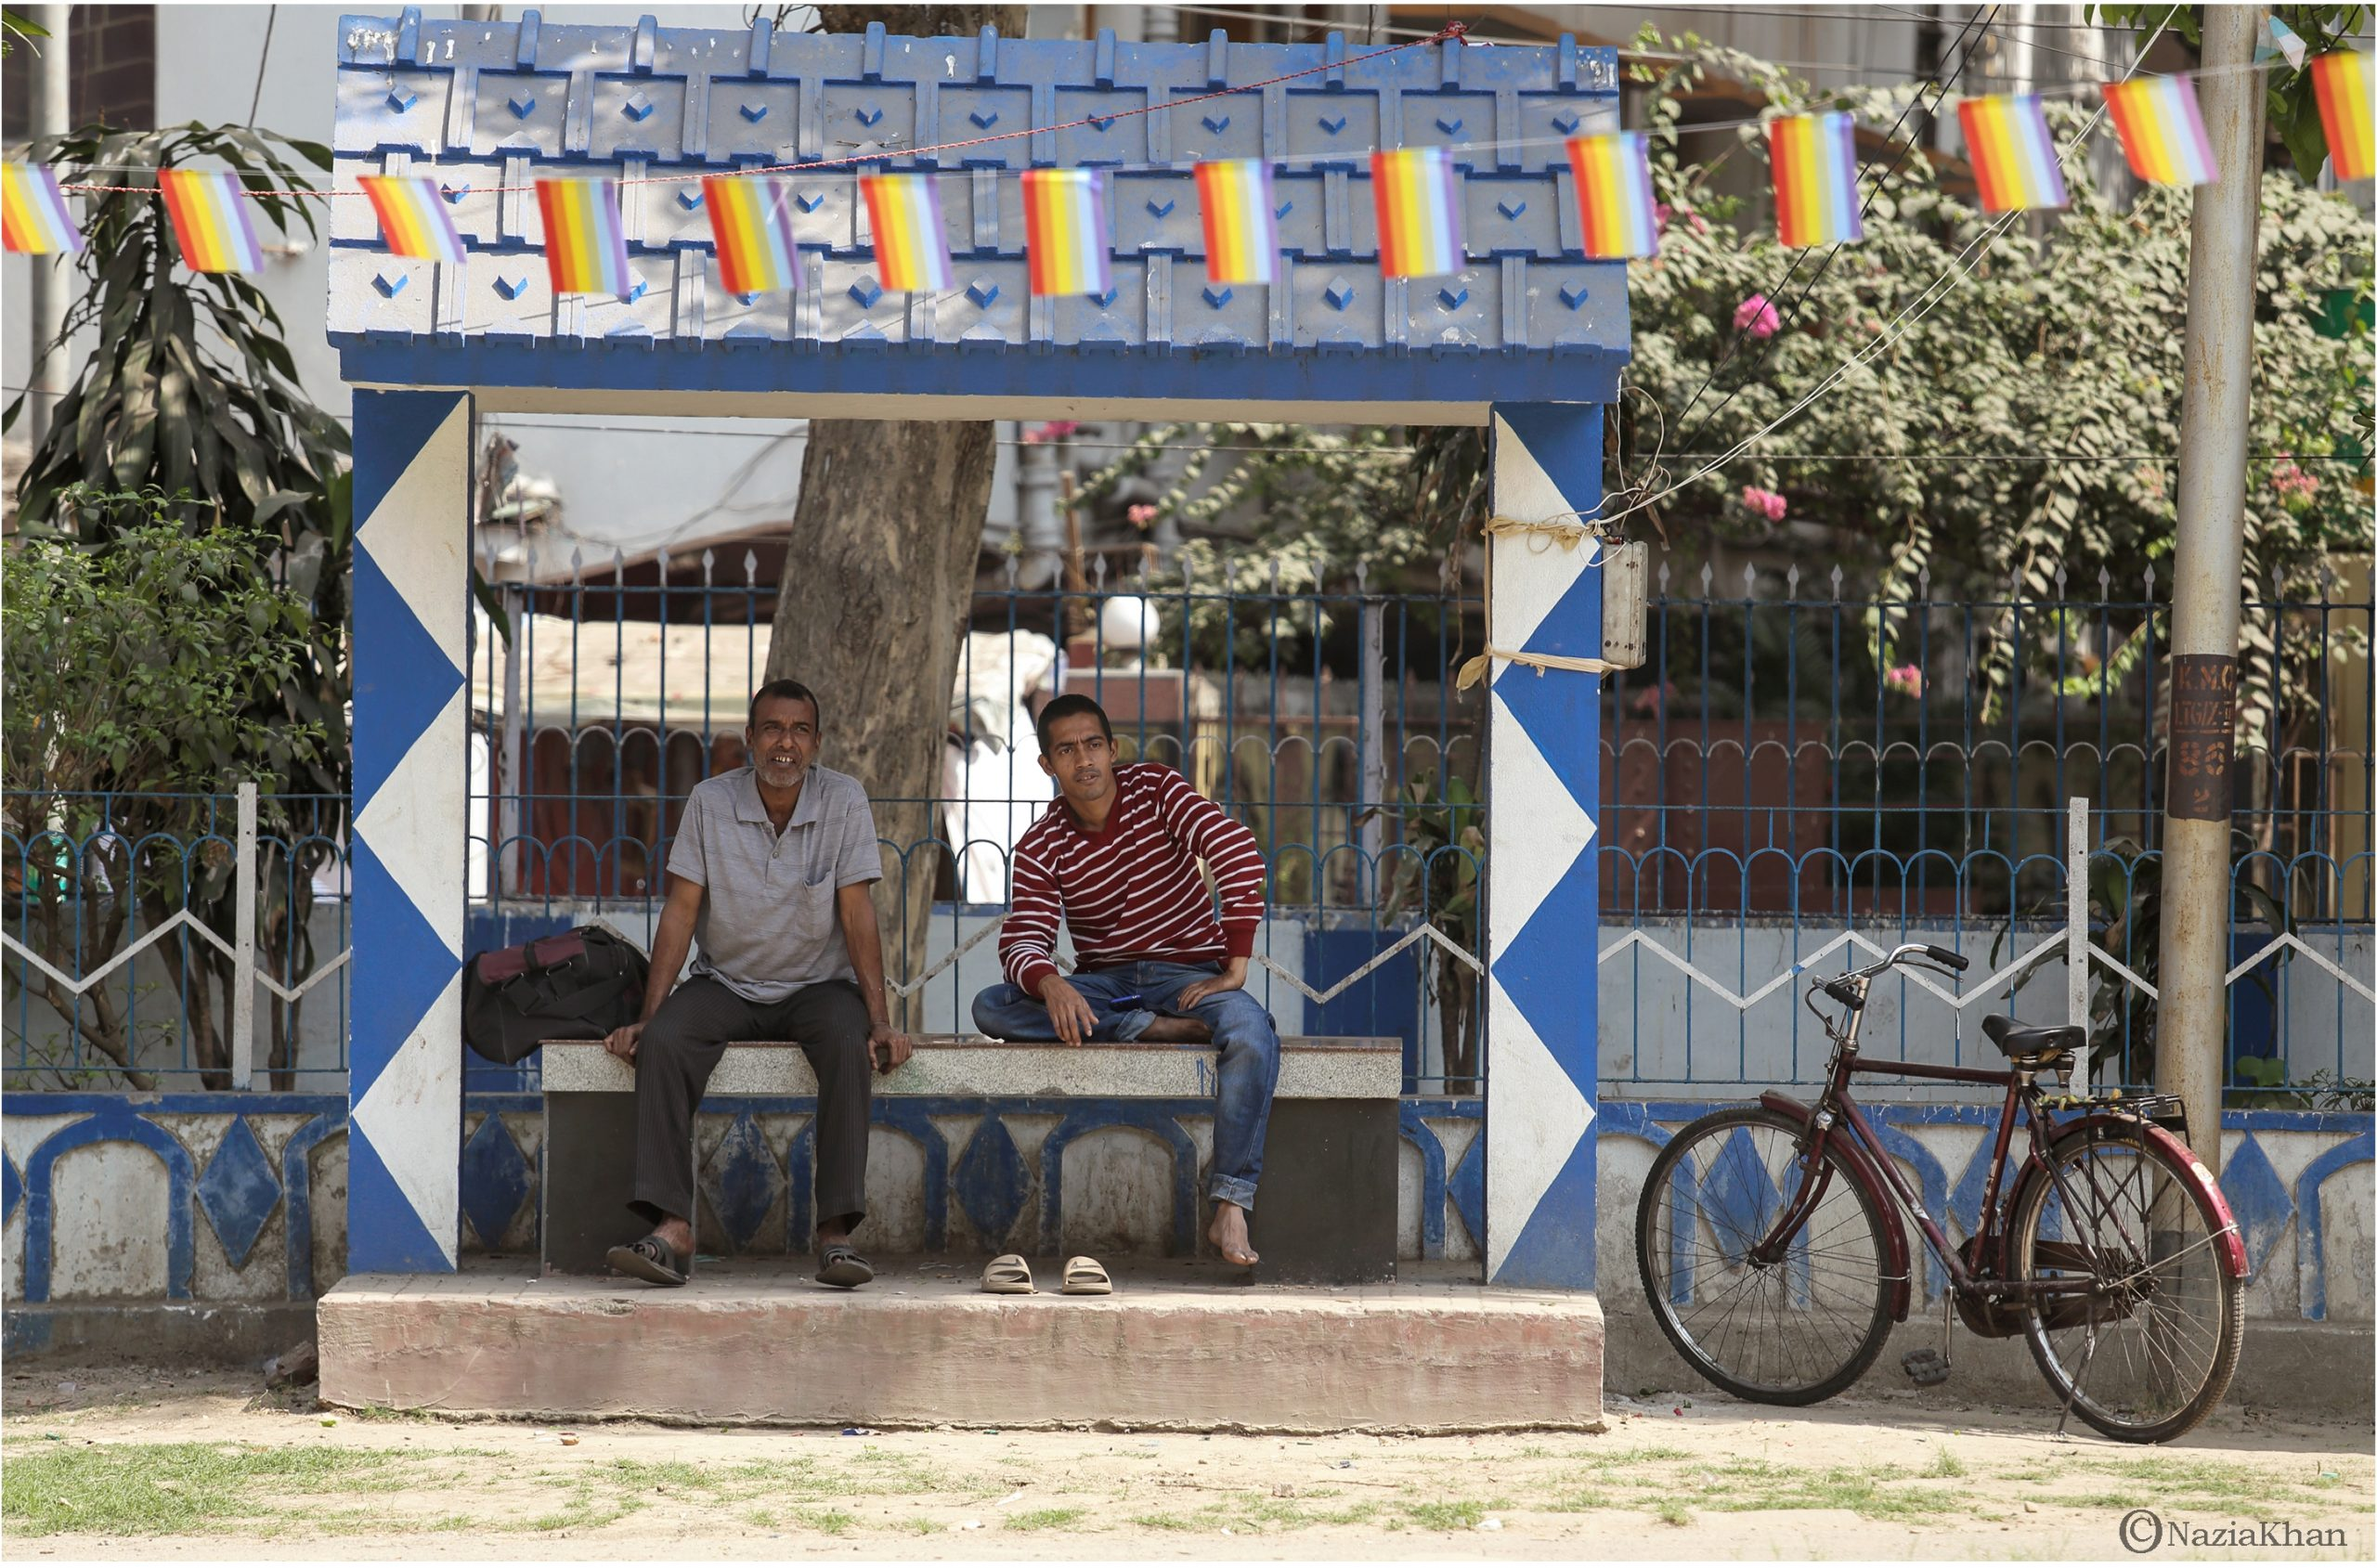 In this long shot photograph one can see the mood on the sidelines of the 'Kolkata Rainbow Carnival 2018'. Two men, one middle aged and the other younger, are seated on a stone bench on a raised platform under a blue and white shelter. Both the men seem to be gazing at the happenings of the carnival, and are smiling at what they see. The older man is dressed in t-shirt and trousers, while the younger man is in a light pullover and jeans. The older man has a shoulder bag kept next to him on the bench. From the looks of it, both men seem to be labourers. A bicycle is parked next to the shelter and behind it is a lamp post. The shelter is at one of the boundaries of the park. Behind the shelter one can see the boundary railing, and behind it a house and several shrubs and flowering plants (including a bougainvillea tree). In the foreground one can see a string of rainbow flags cutting across the entire width of the photograph. The carnival was organized by the West Bengal Forum for Gender and Sexual Minority Rights on February 18, 2018 at Triangular Park in South Kolkata. Photo credit: Nazia Khan